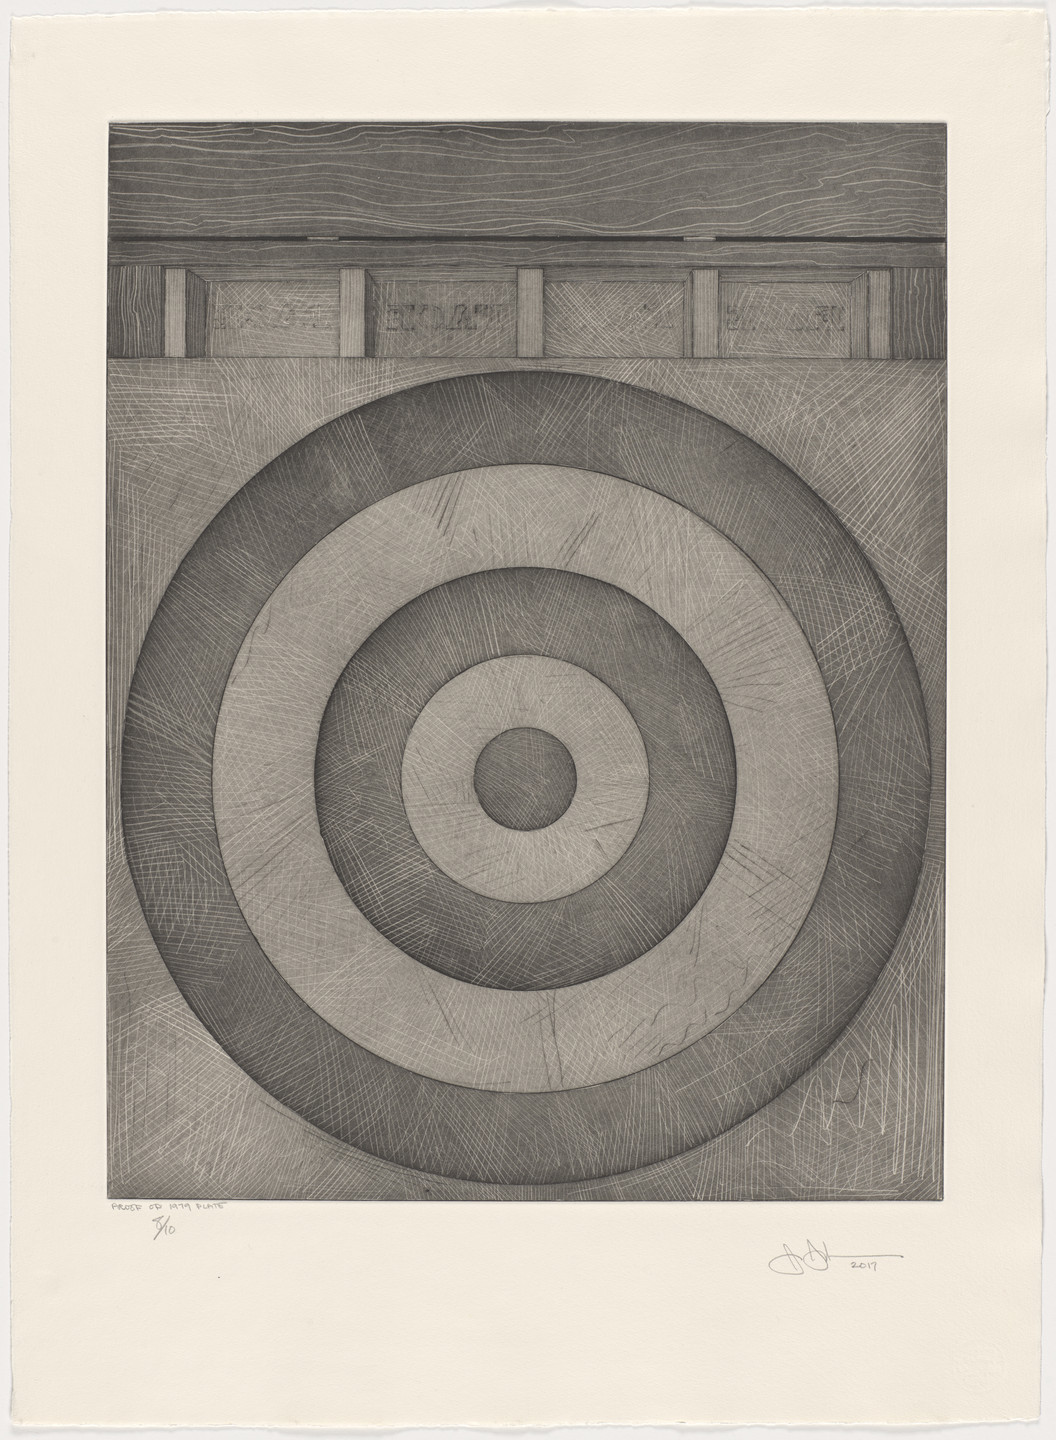 Jasper Johns. Target with Four Faces. 2017